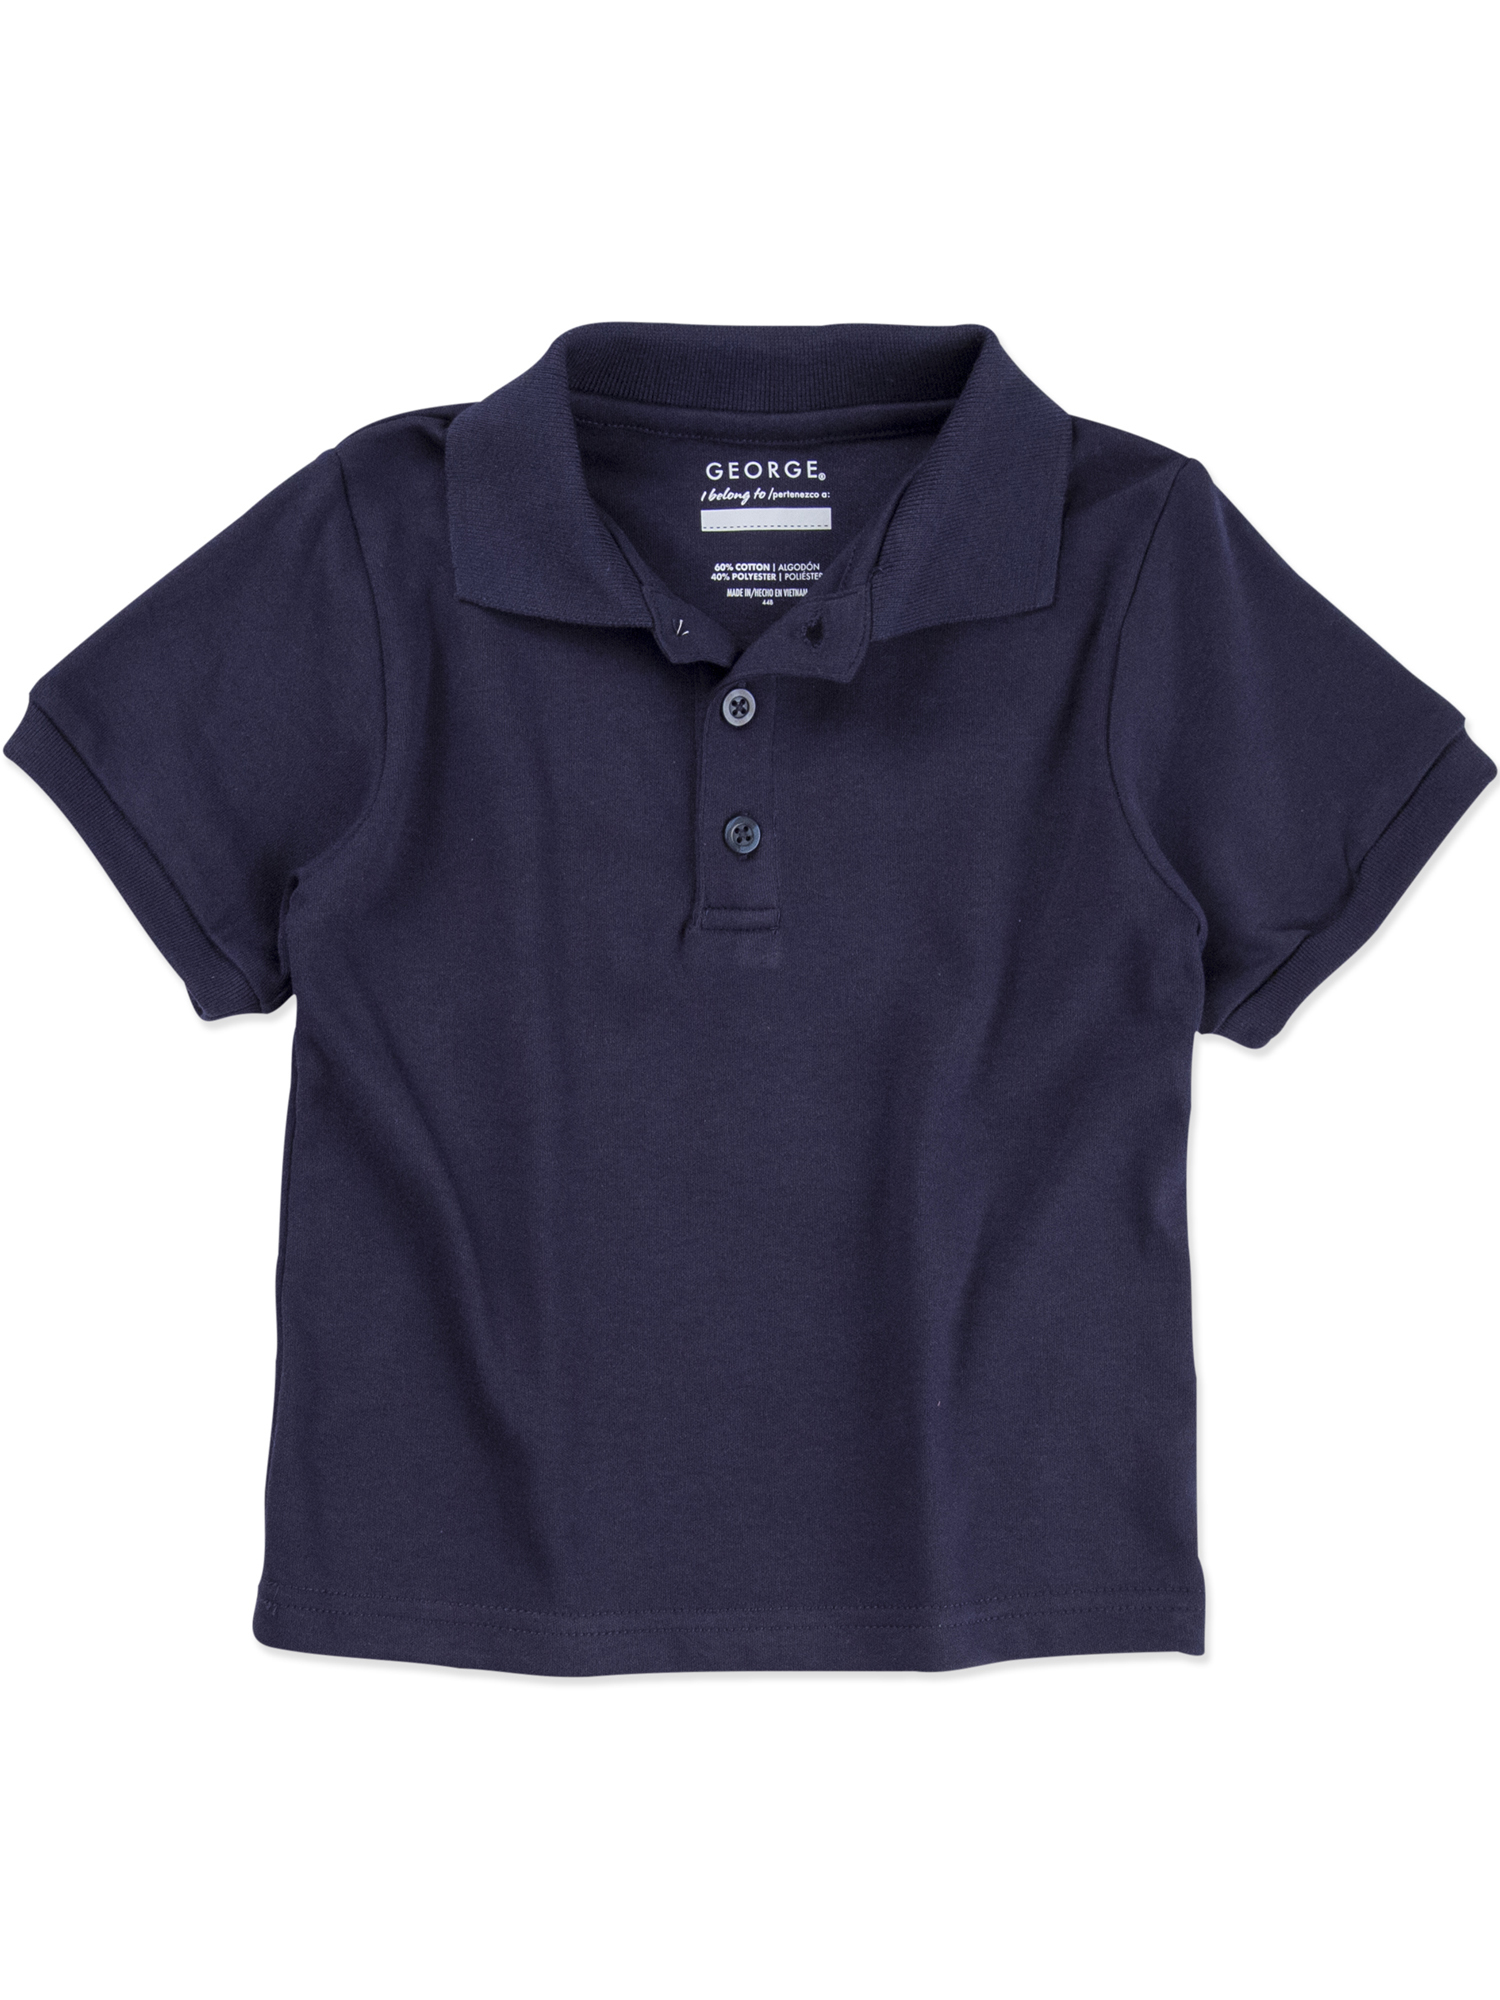 Toddler Boy or Girl Unisex School Uniform Short Sleeve Polo Shirt